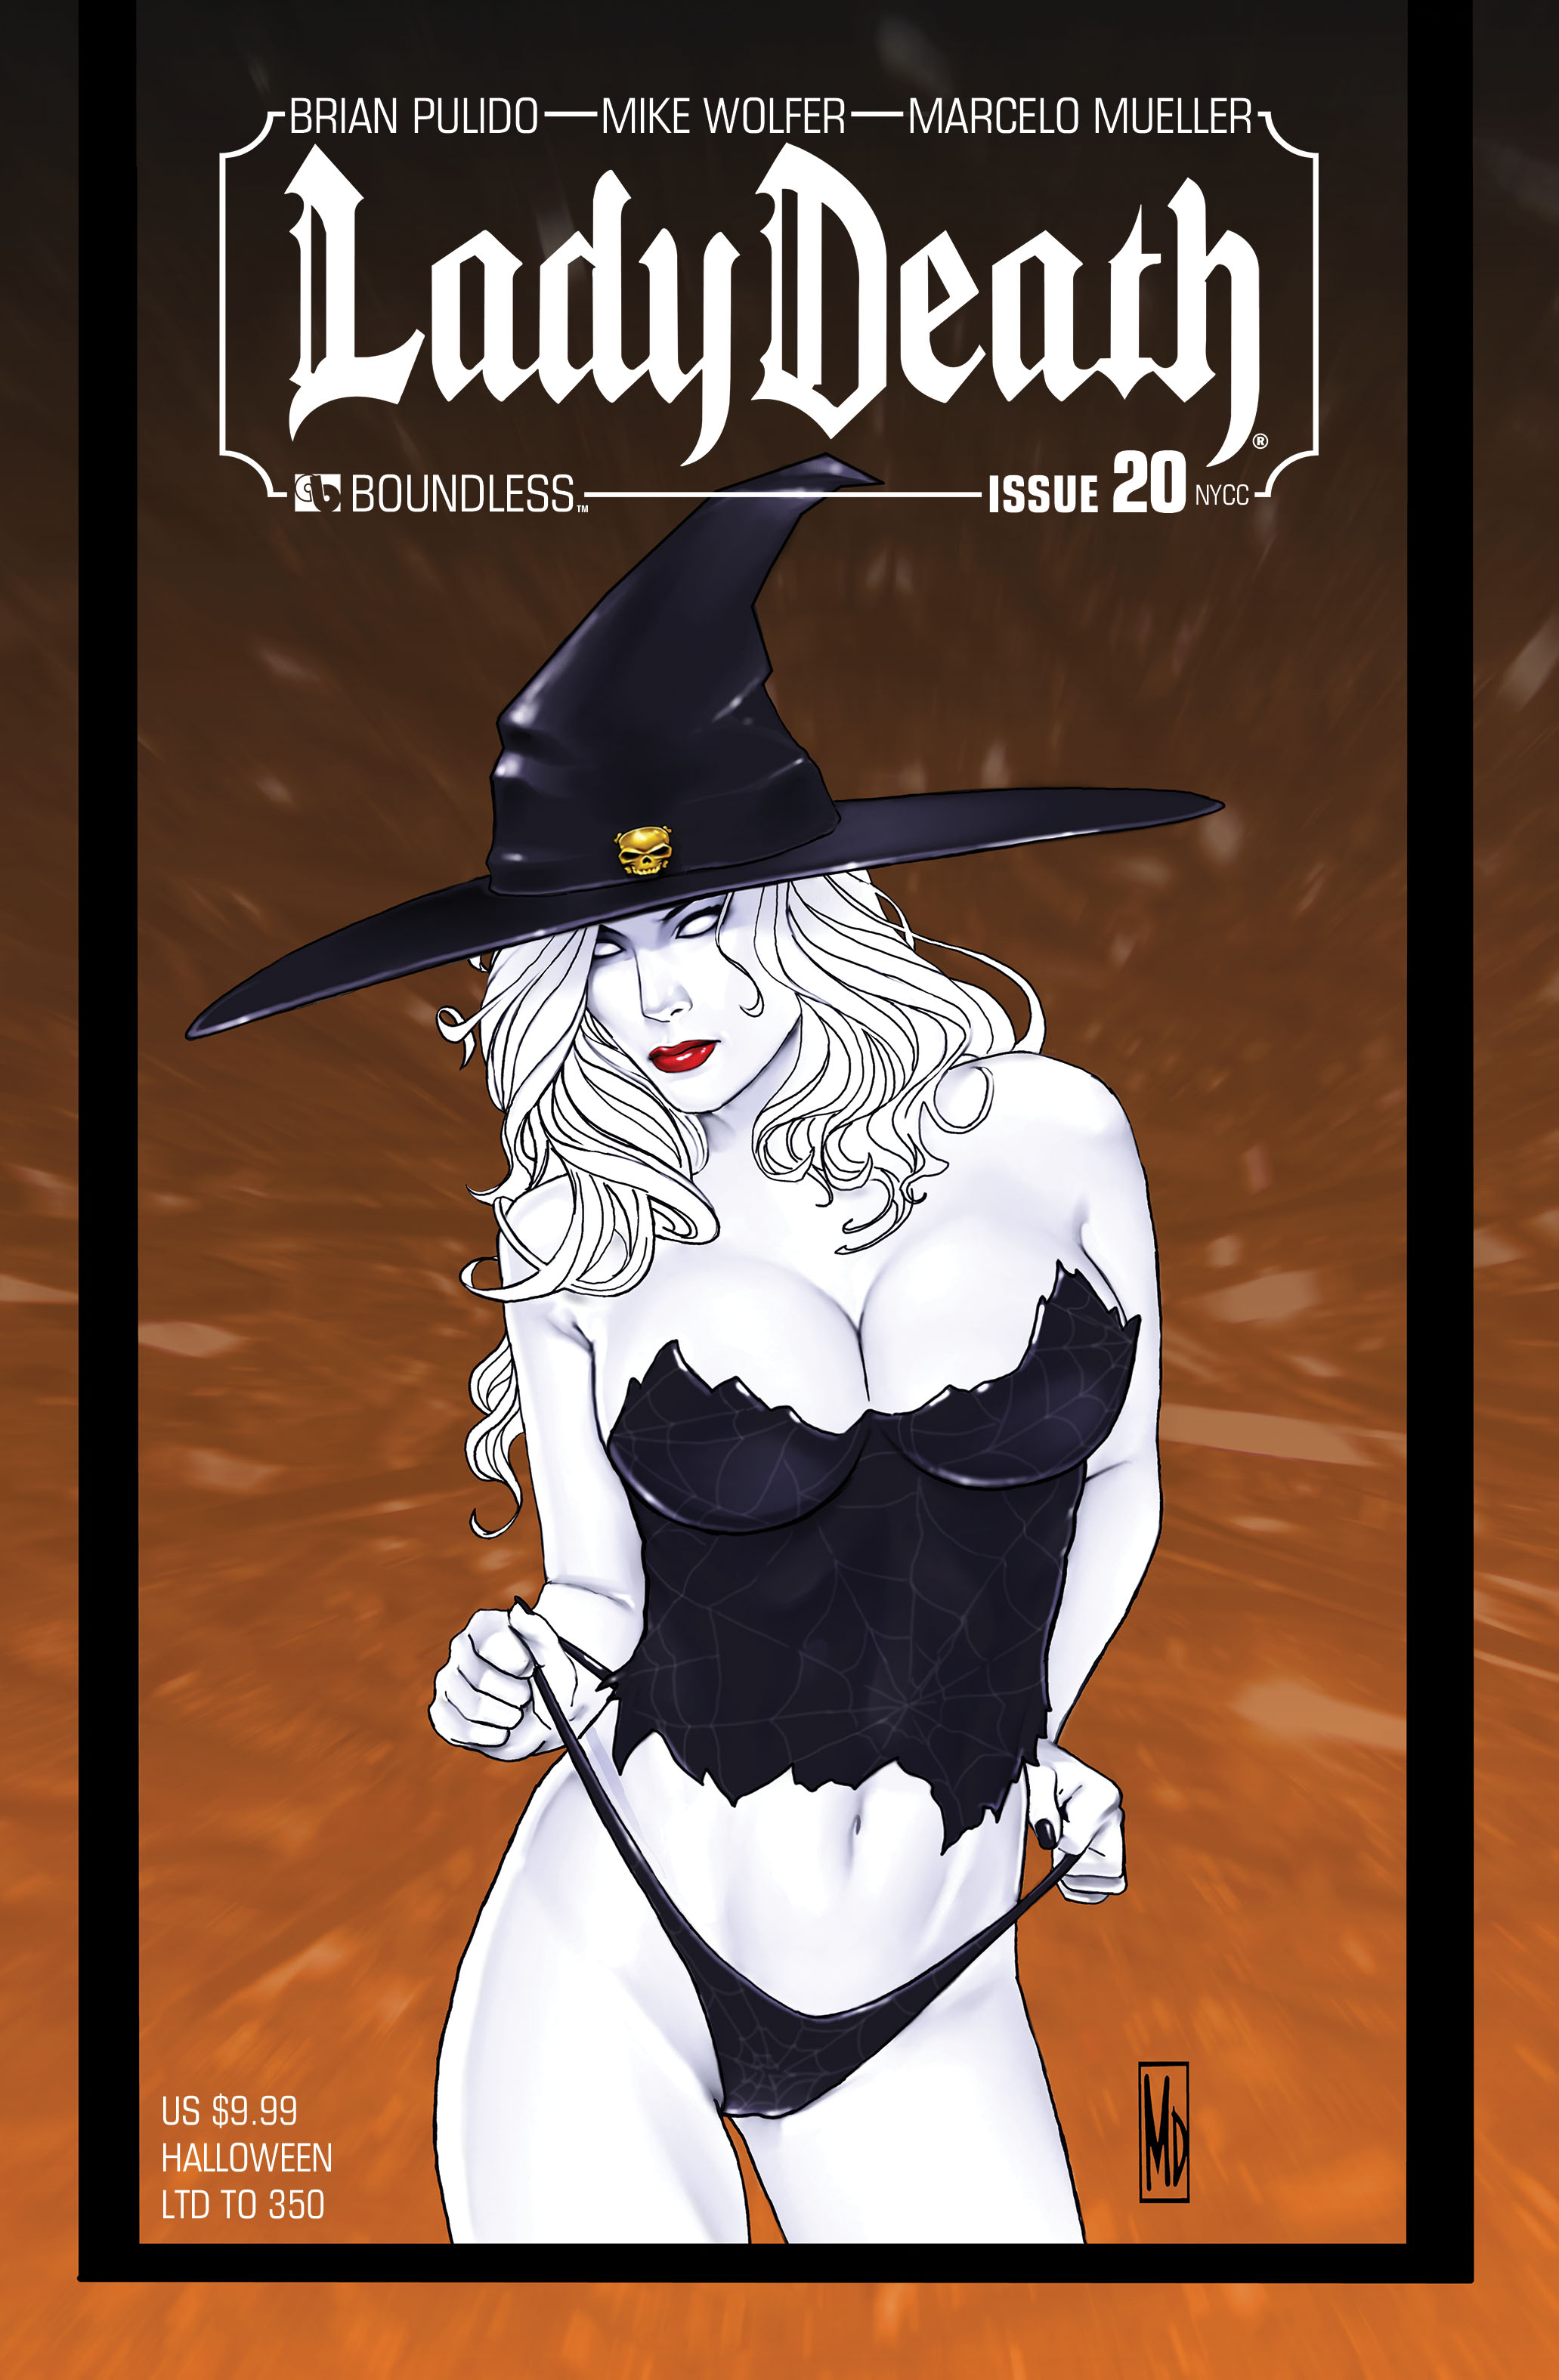 LADY DEATH (ONGOING) #20 NY HALLOWEEN (MR)